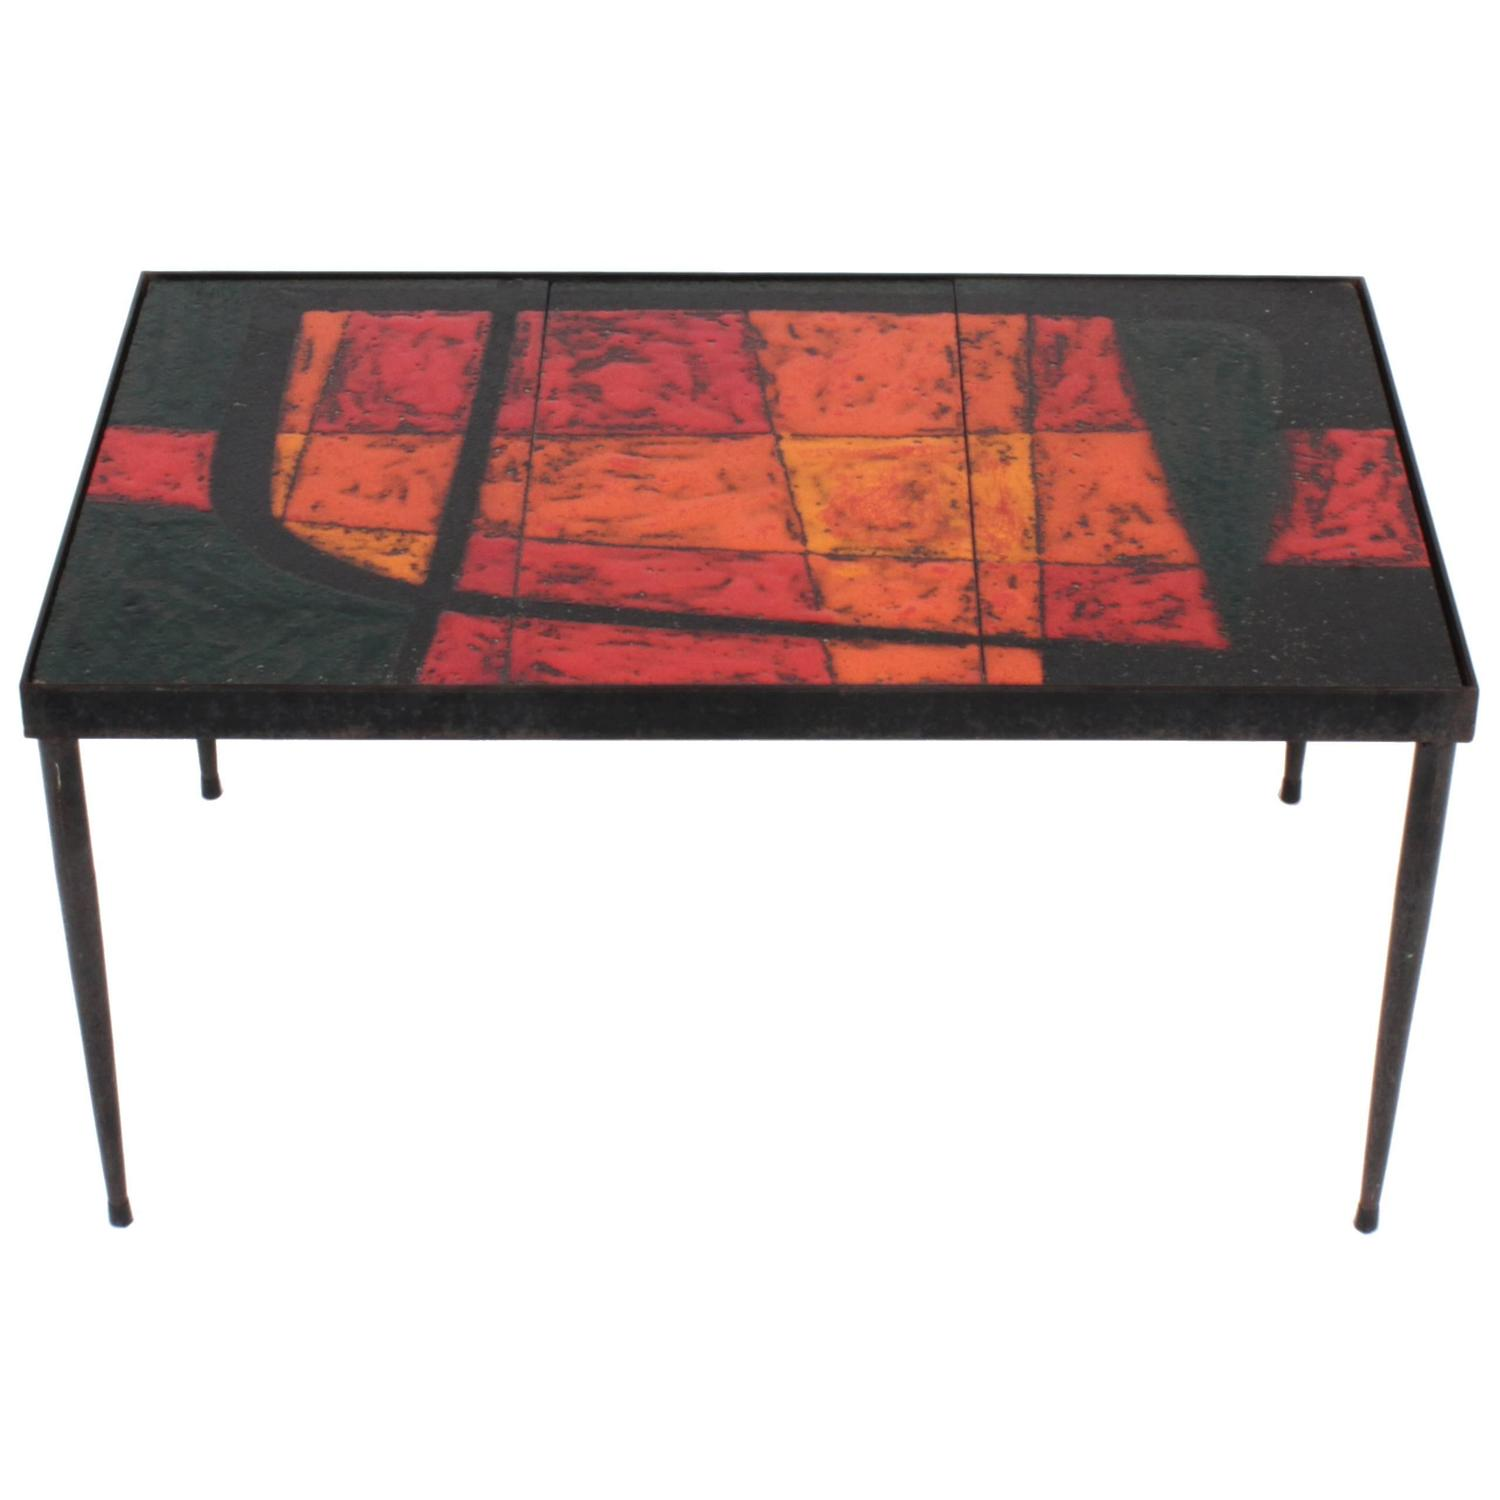 Enameled Lava Coffee Table By The French Ceramists Robert